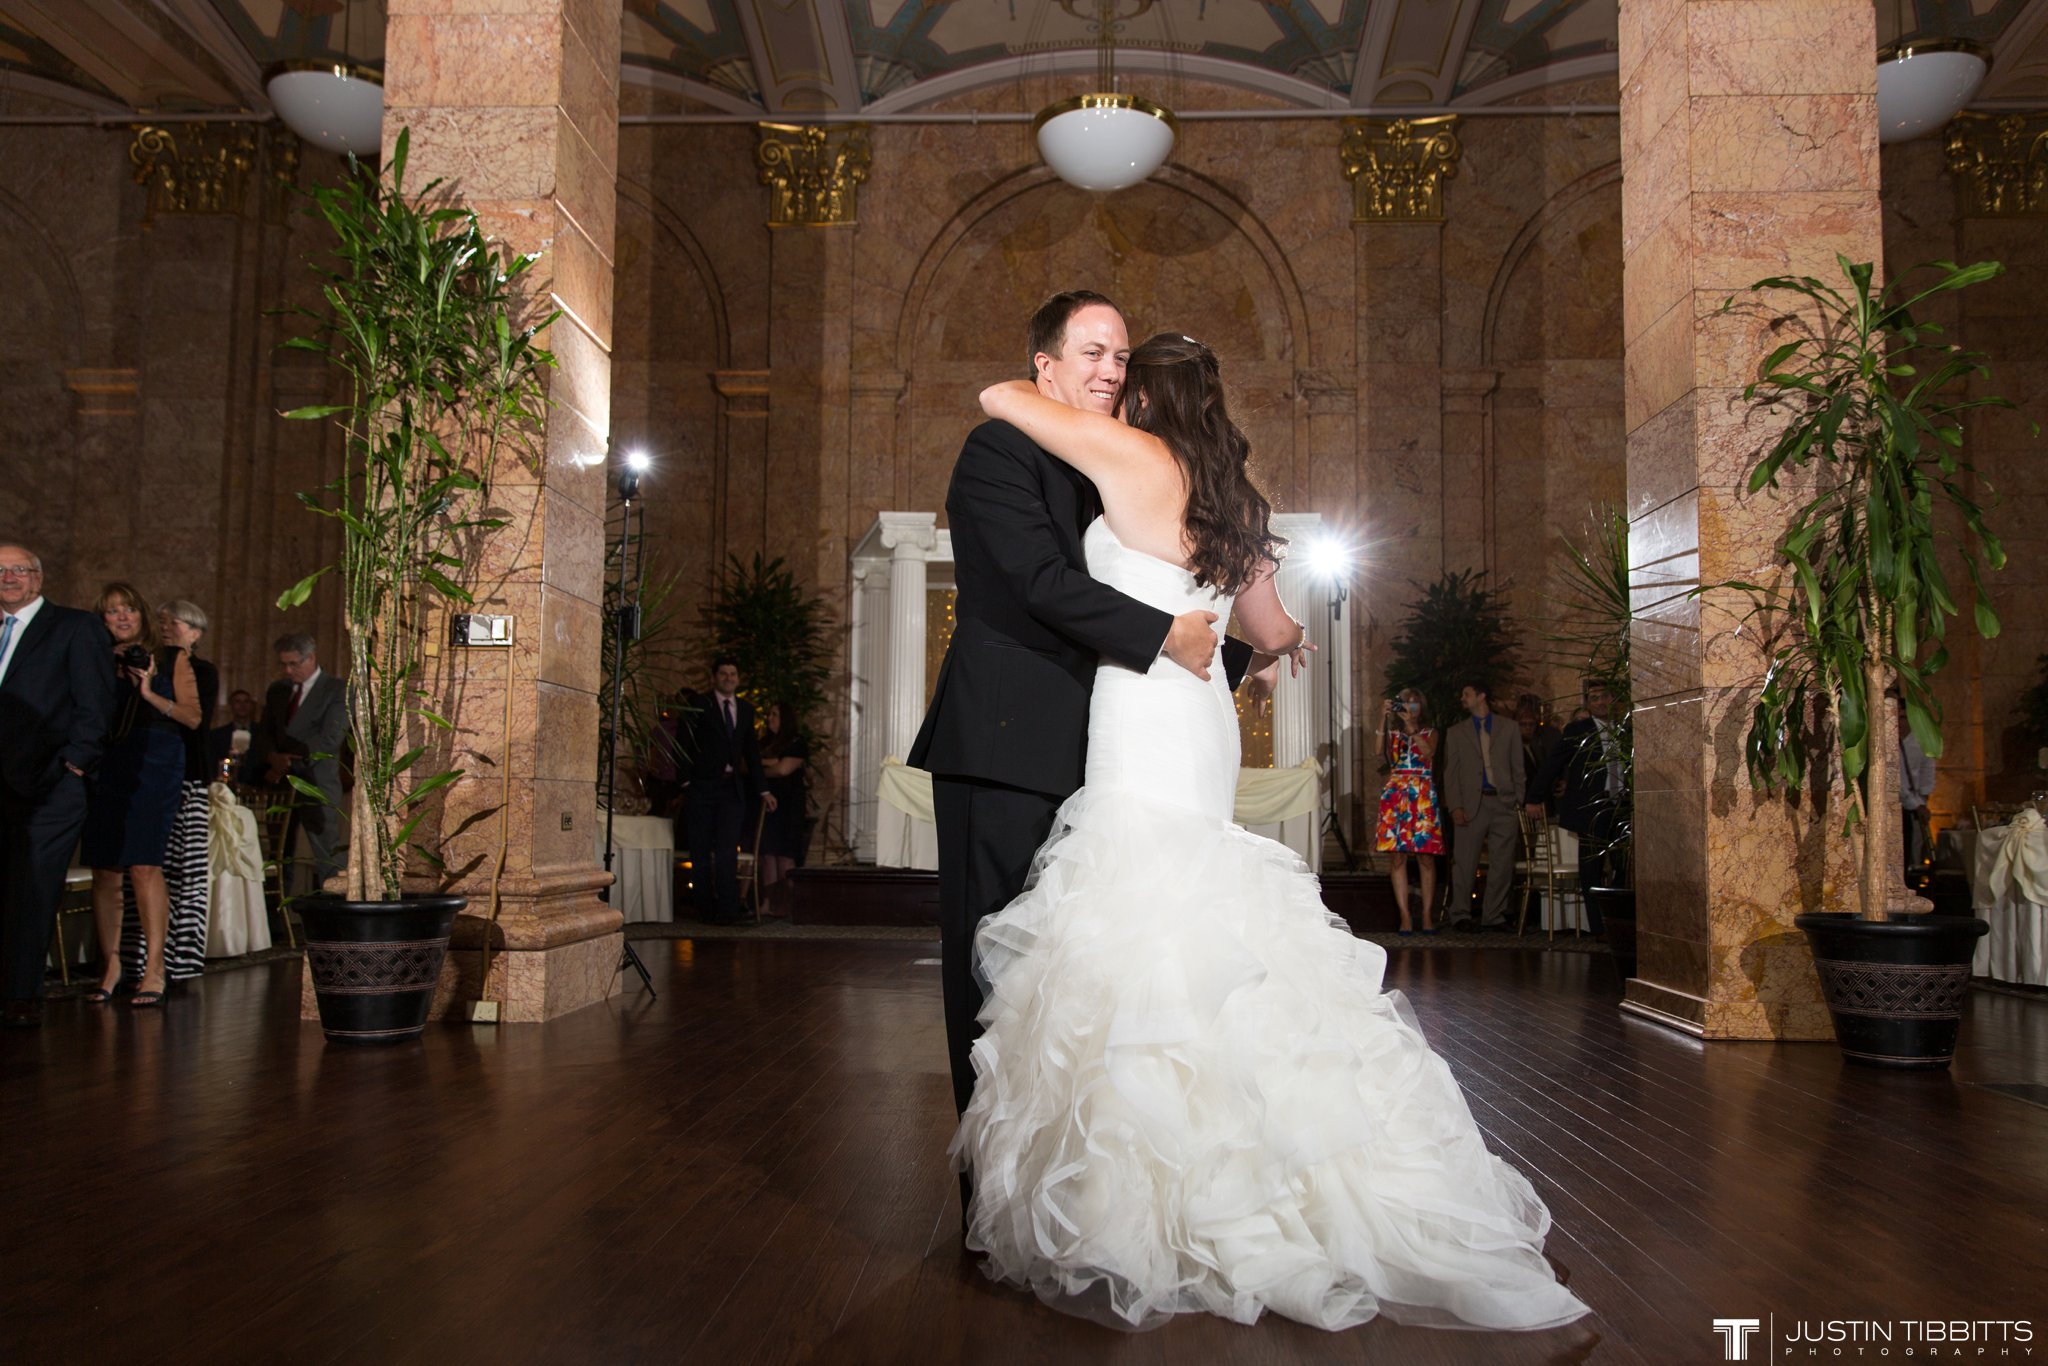 The State Room Albany, NY Wedding with Christian and Meg by Justin Tibbitts Photography_0139